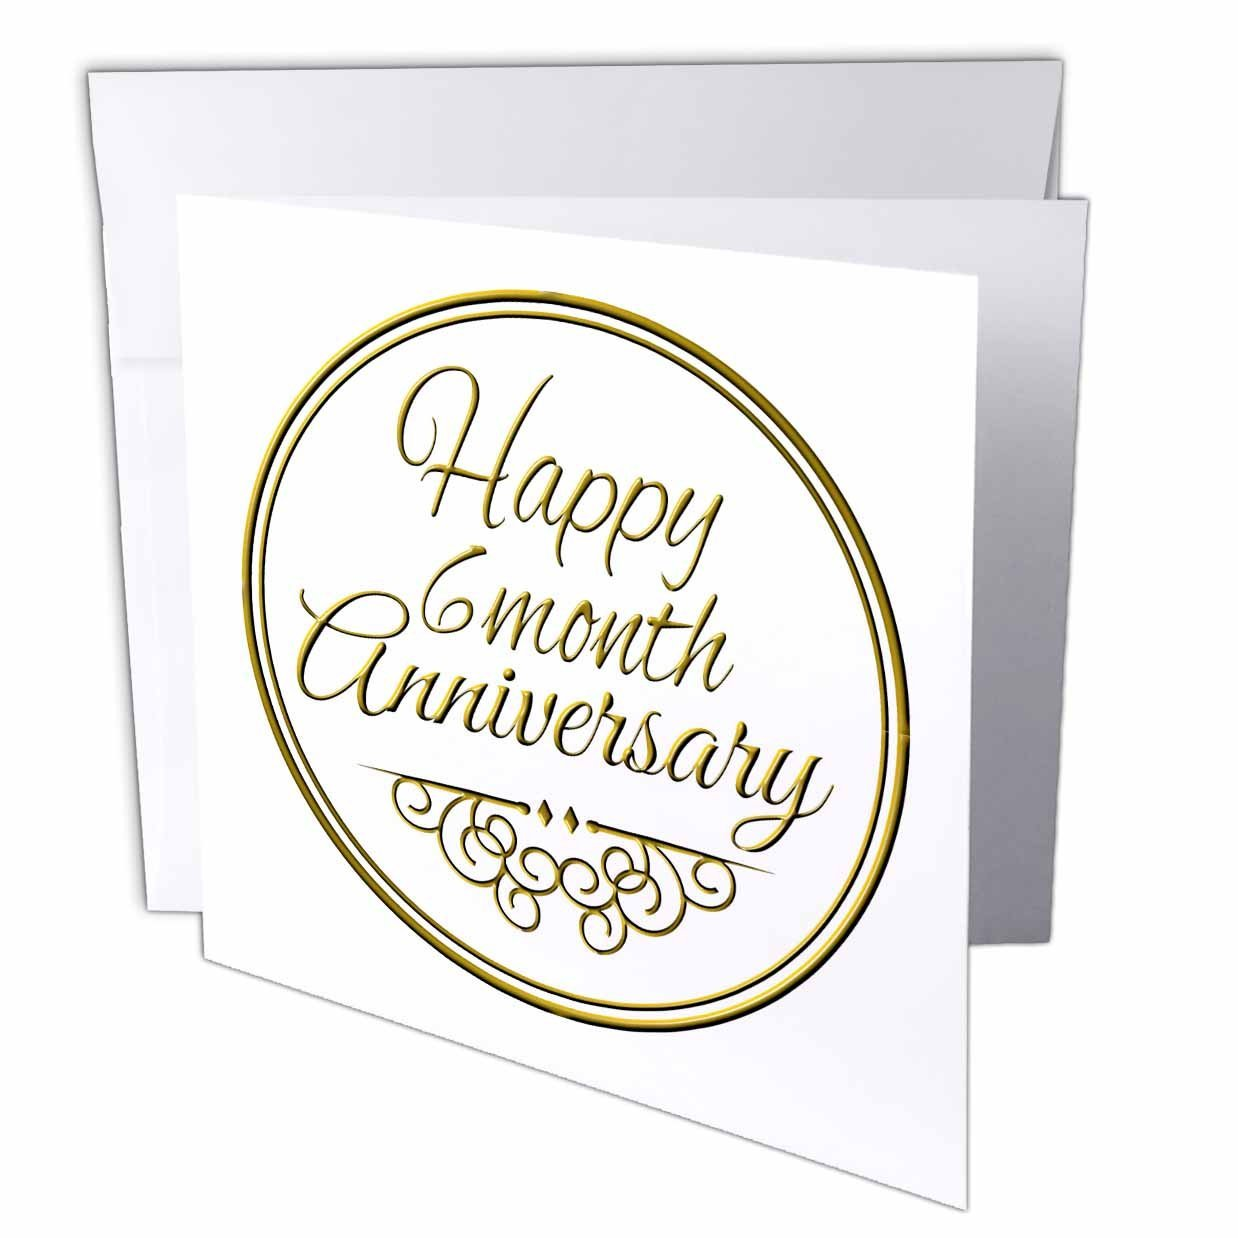 Buy Inspirationzstore Occasions Happy 6 Month Anniversary Gold